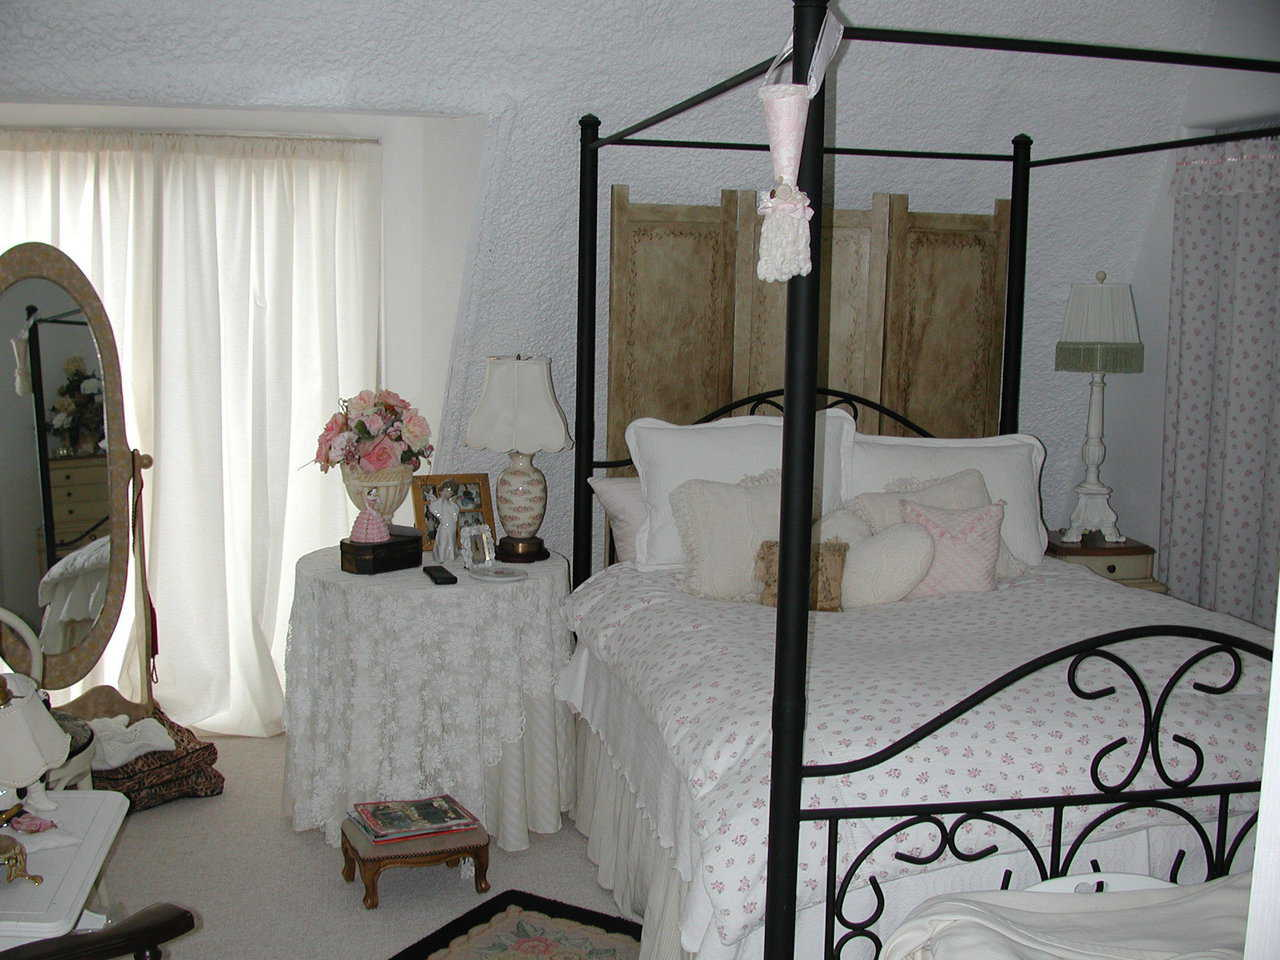 Victorian bedroom — It offers lots of light and a simple, clean design.